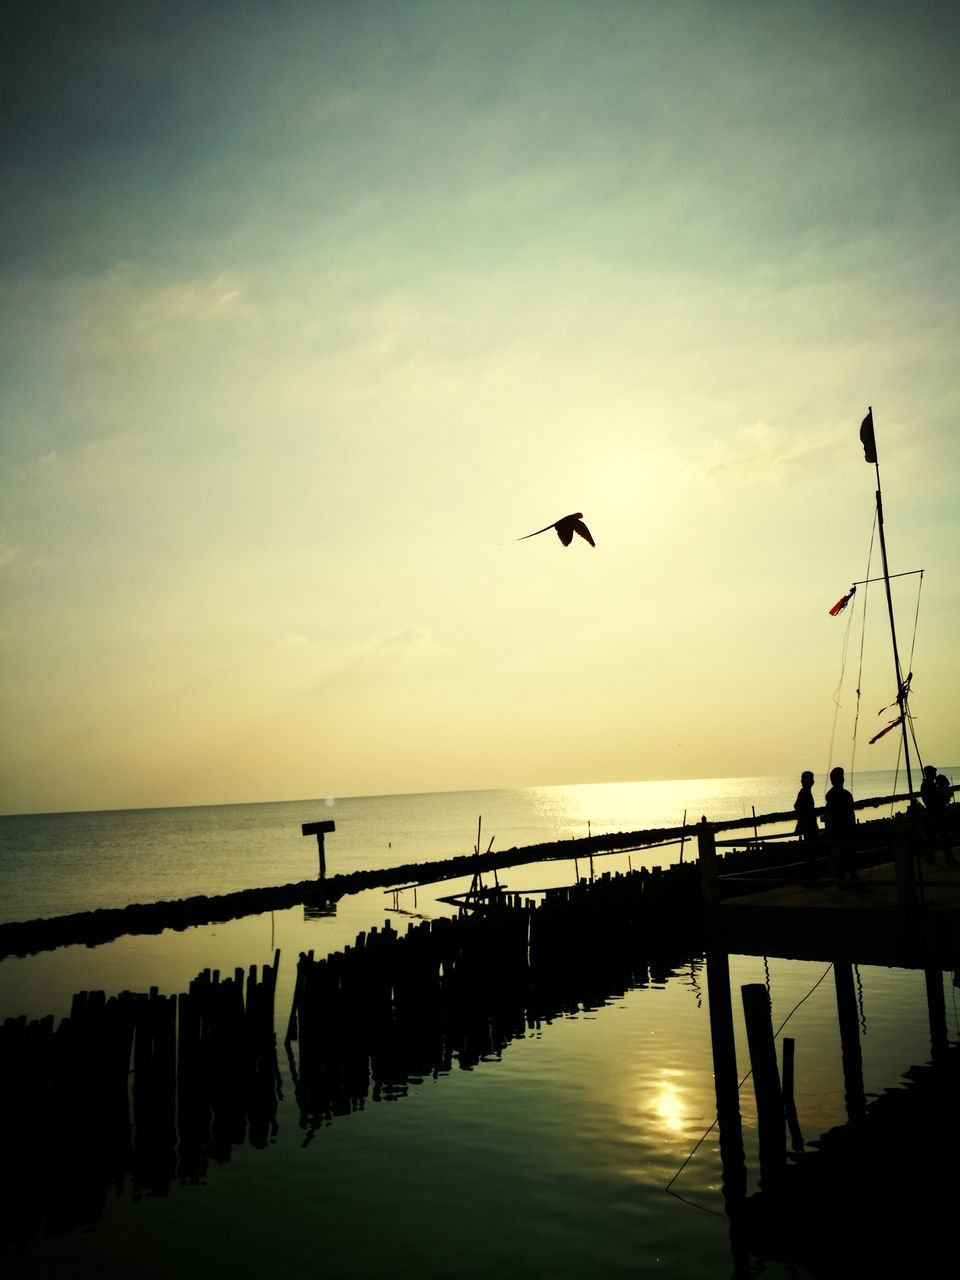 sunset, silhouette, bird, nature, water, beauty in nature, animal themes, animals in the wild, flying, sky, scenics, one animal, tranquility, animal wildlife, reflection, tranquil scene, outdoors, sea, mid-air, no people, spread wings, day